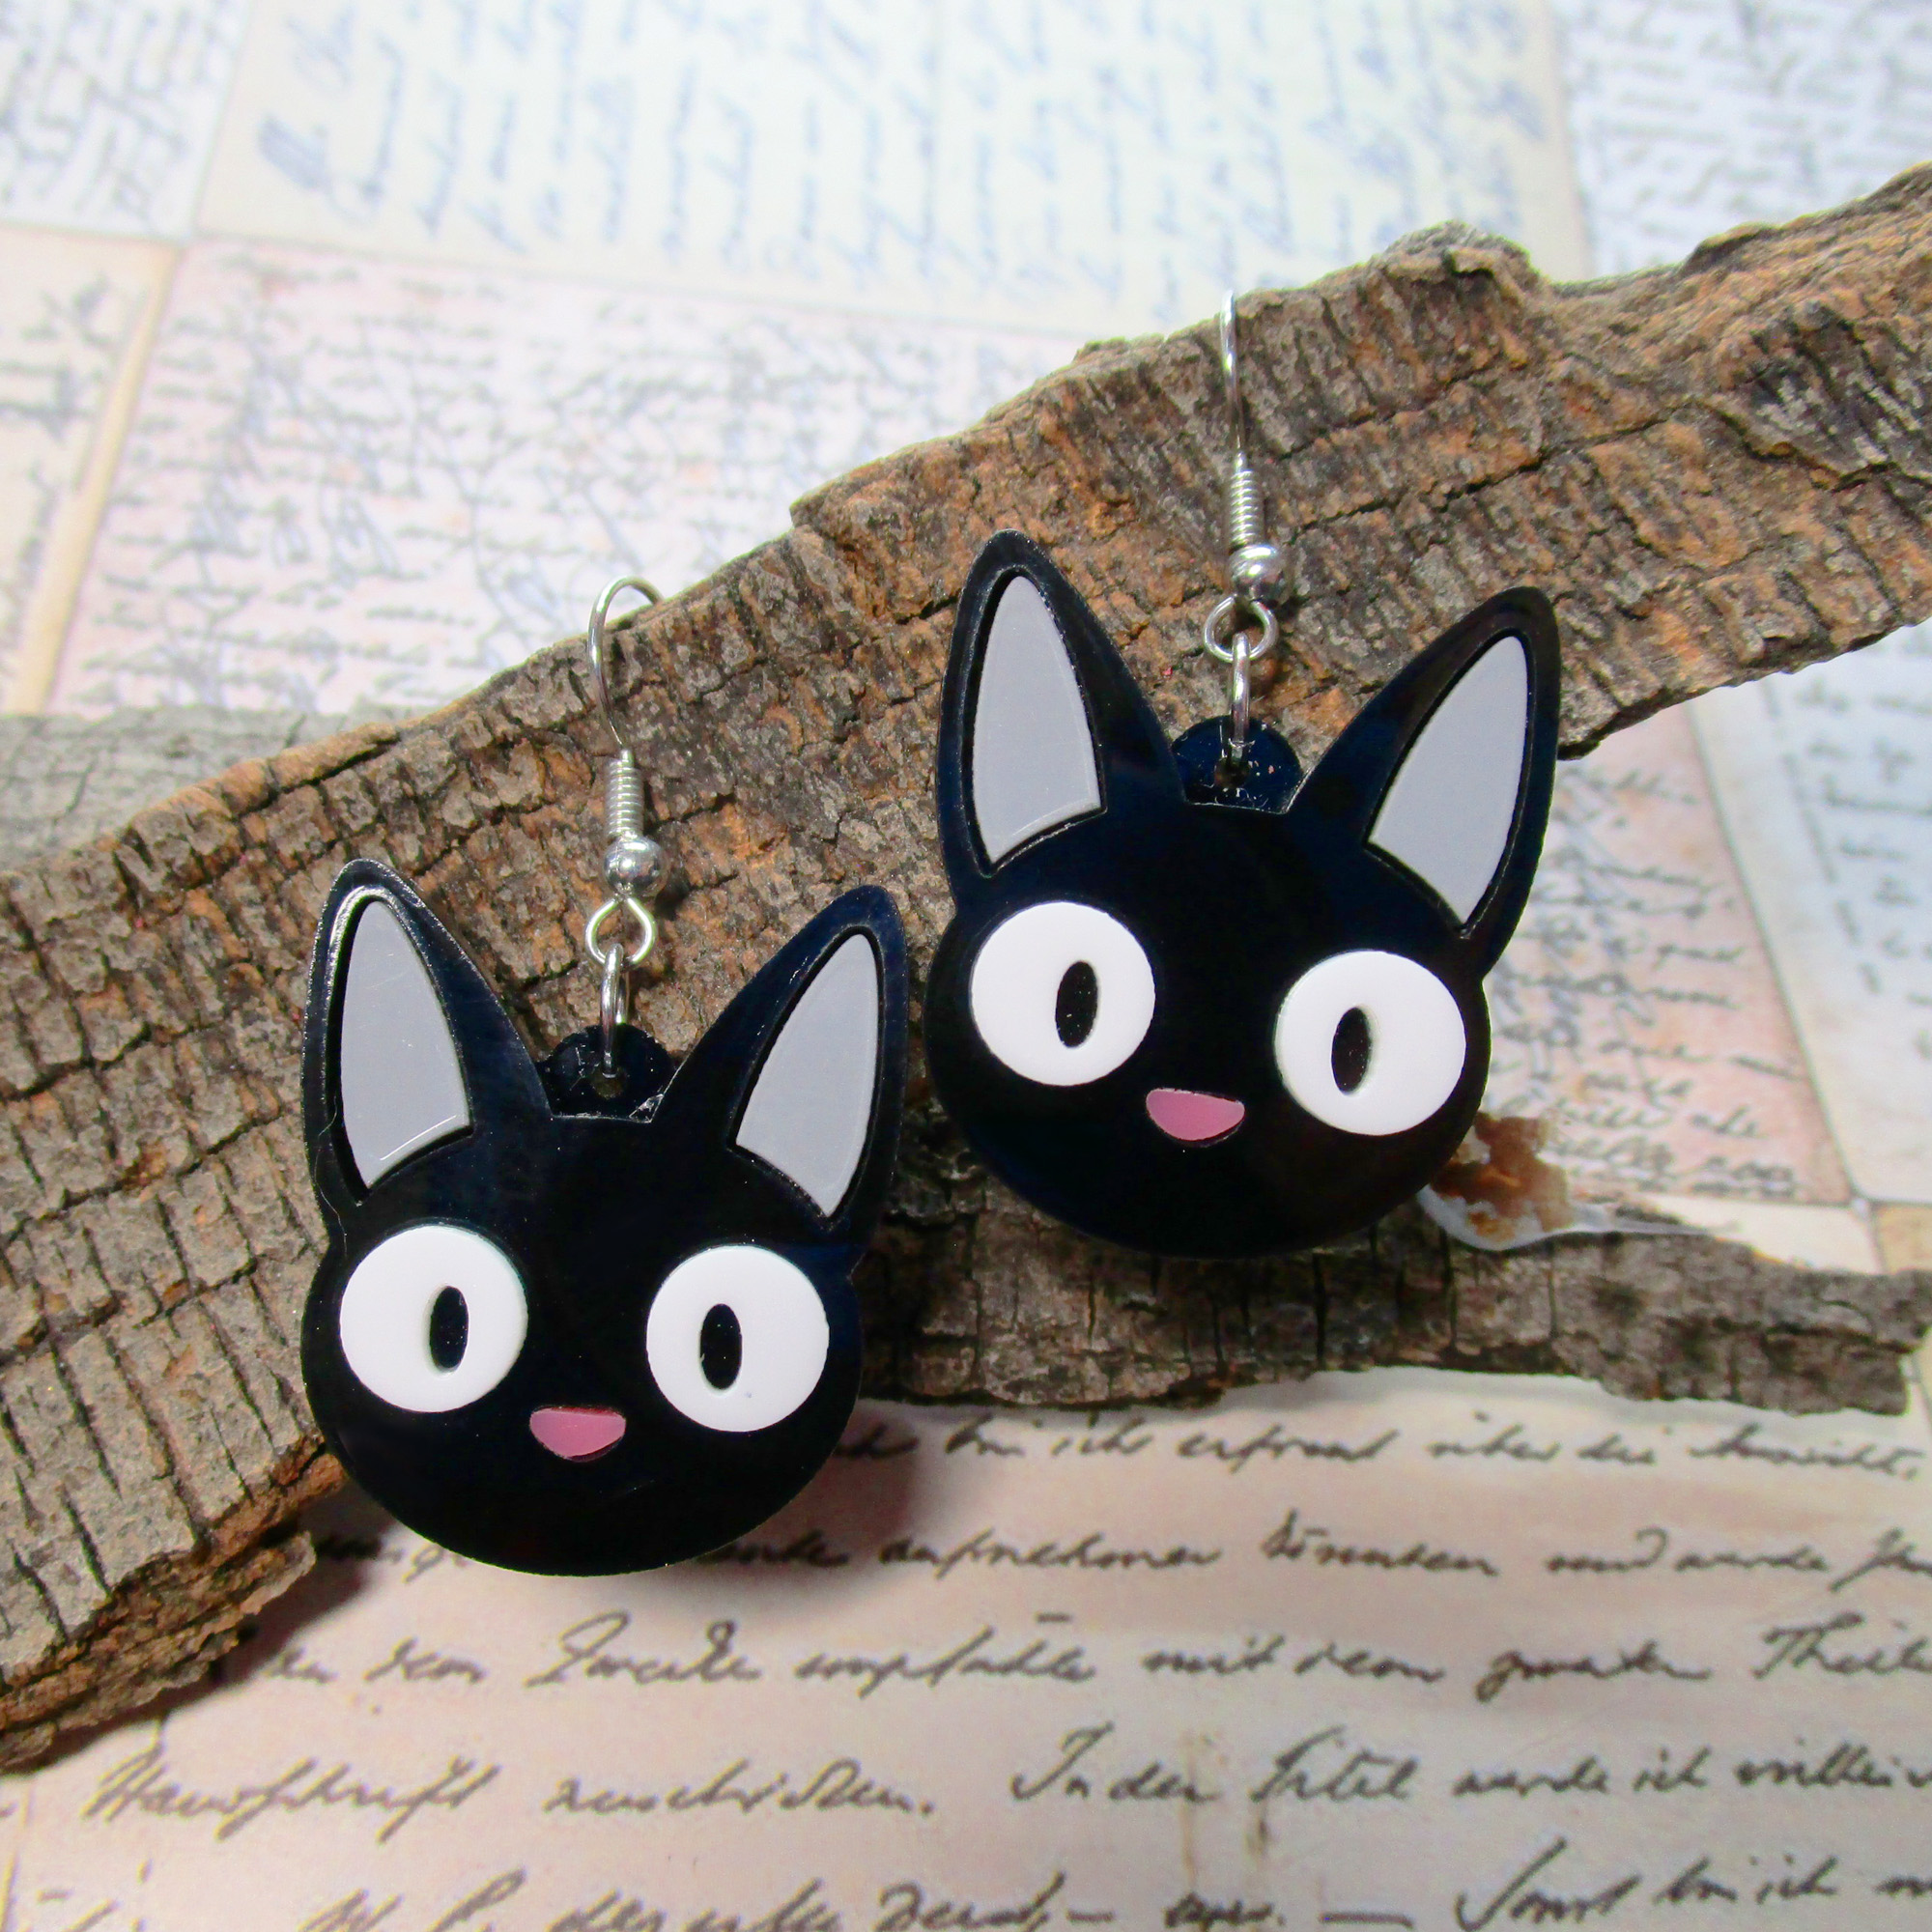 Kiki S Delivery Service Cat Jiji Earrings It S Just So You